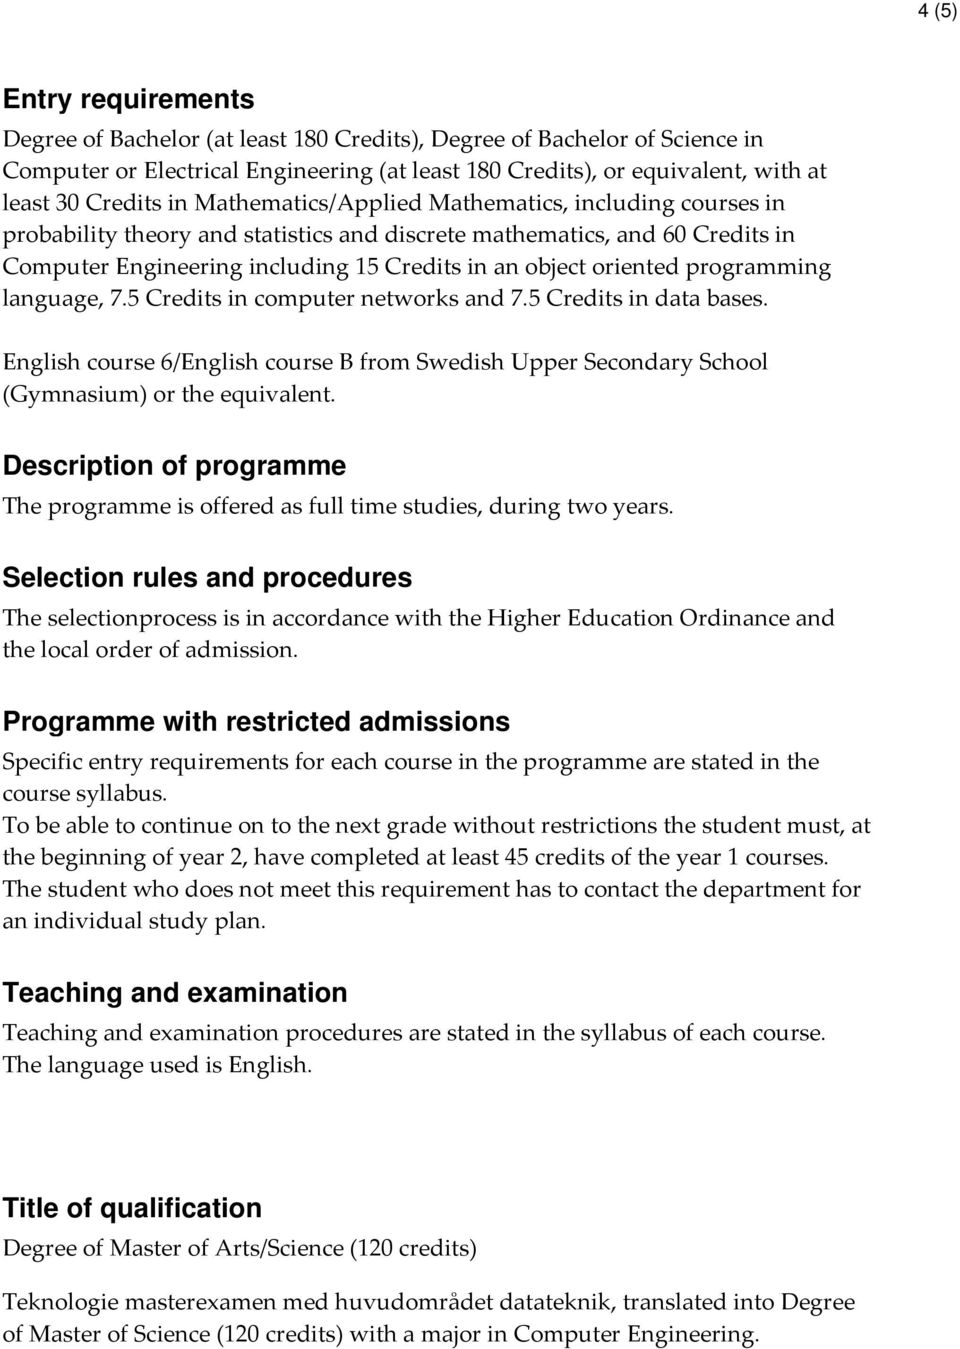 programming language, 7.5 Credits in computer networks and 7.5 Credits in data bases. English course 6/English course B from Swedish Upper Secondary School (Gymnasium) or the equivalent.